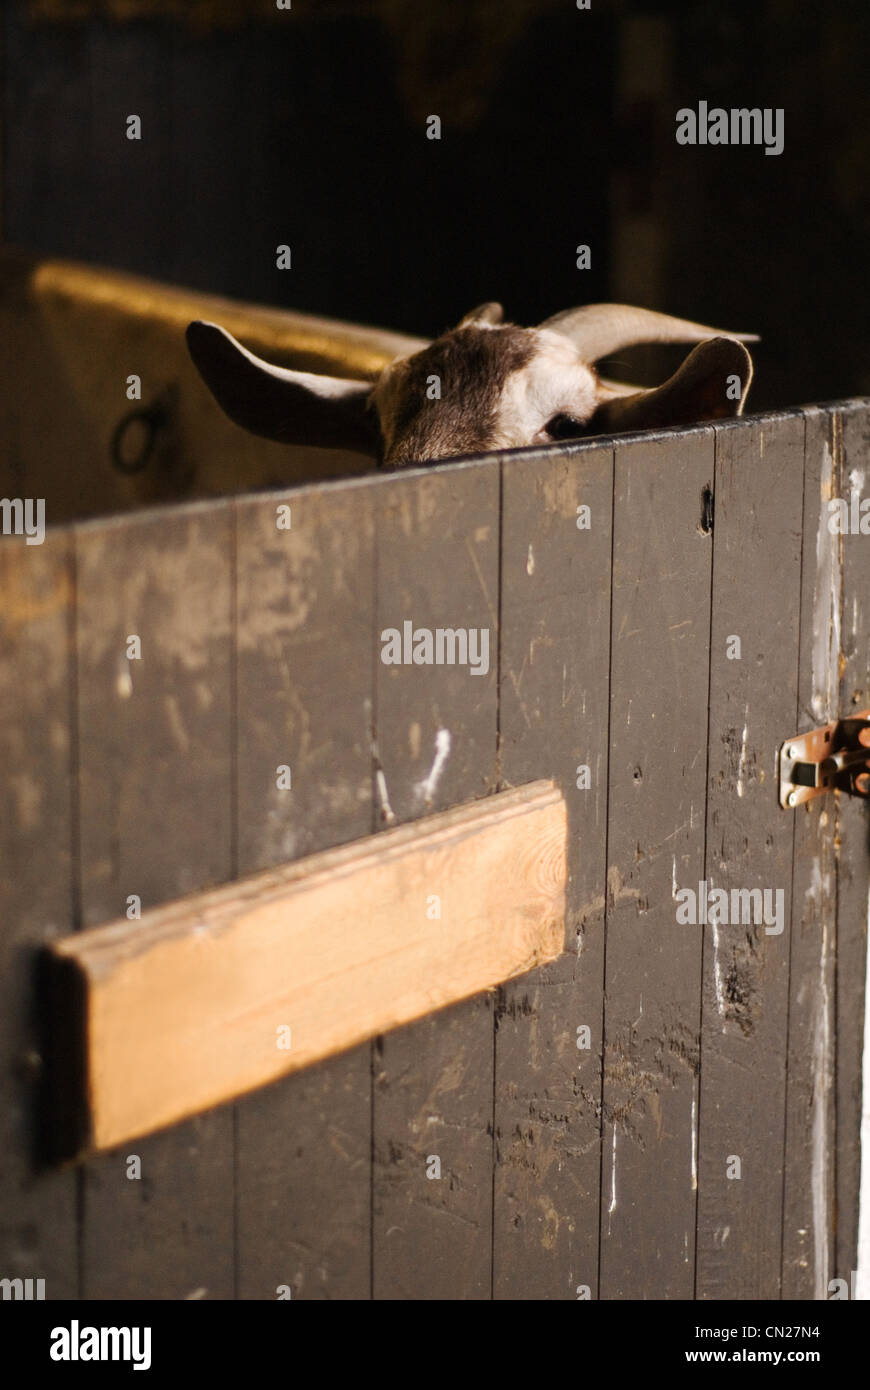 Goat in barn - Stock Image